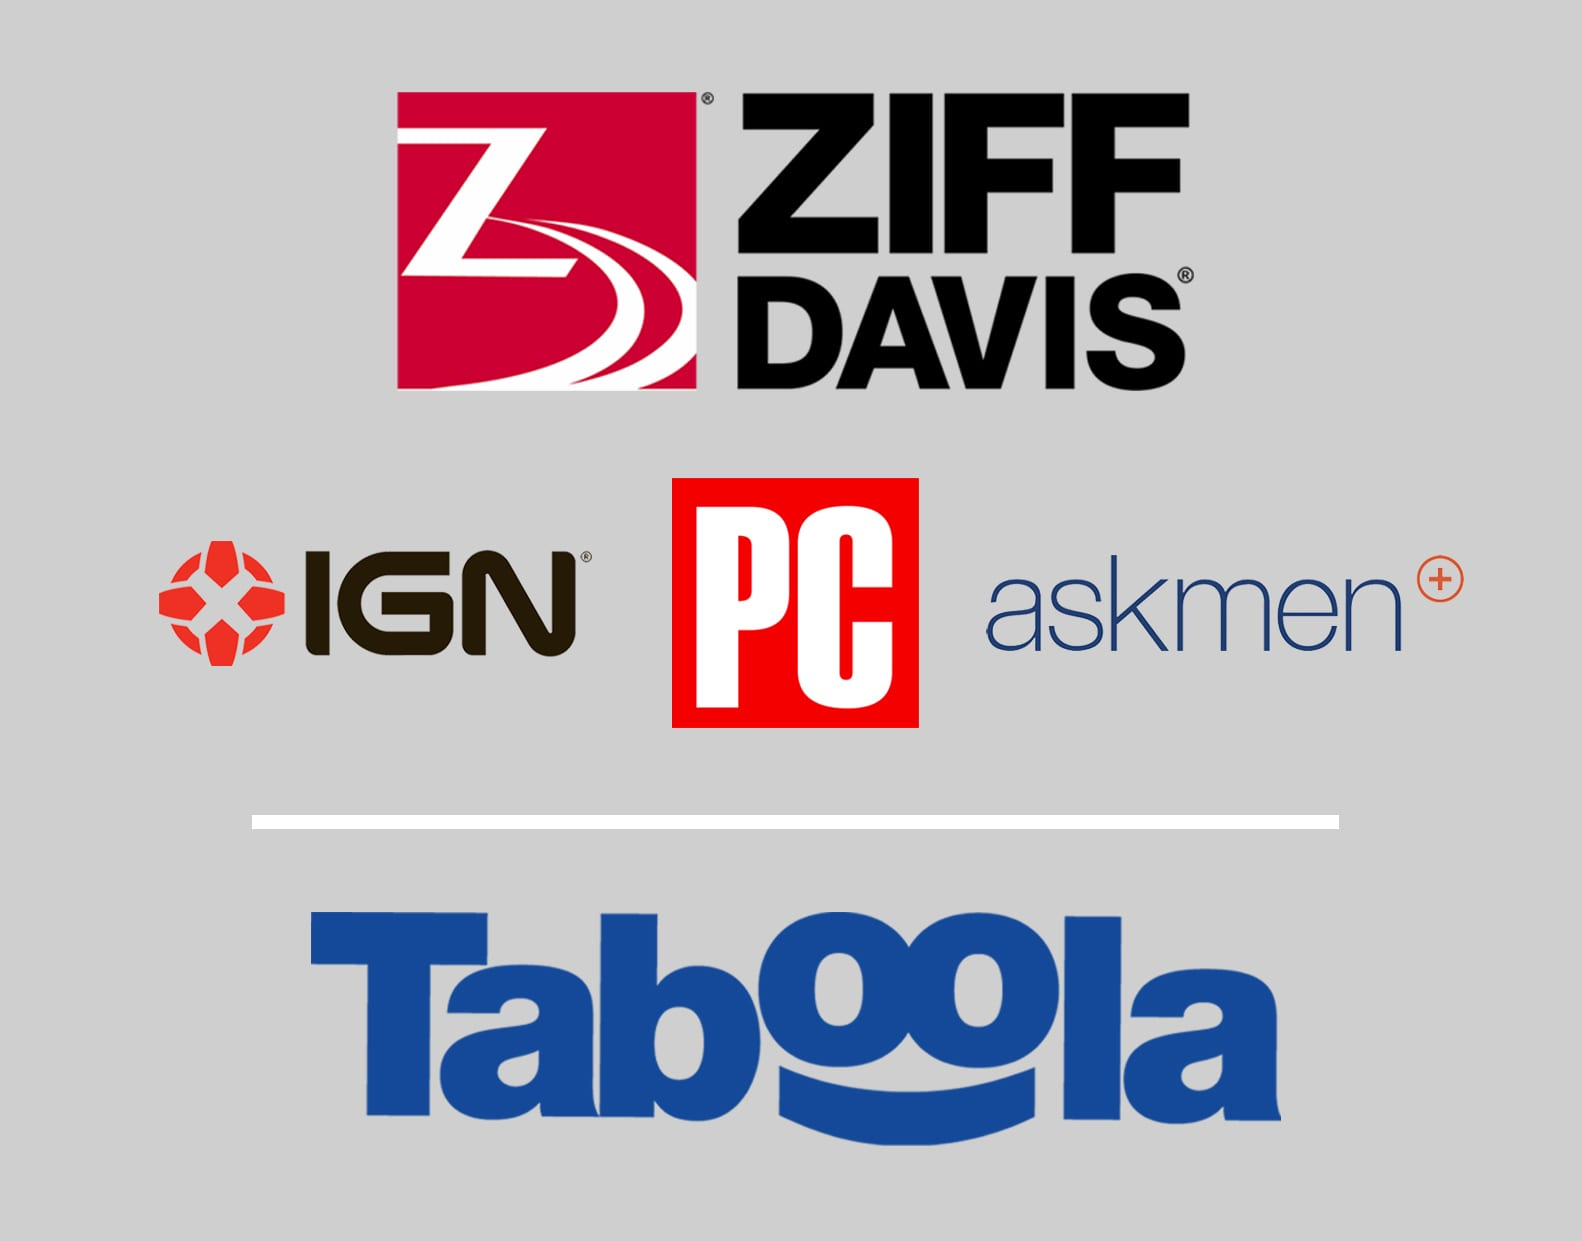 Taboola and Ziff Davis Connect Brands for the 1st Time with High-Intent Tech/Gaming Audiences At Scale